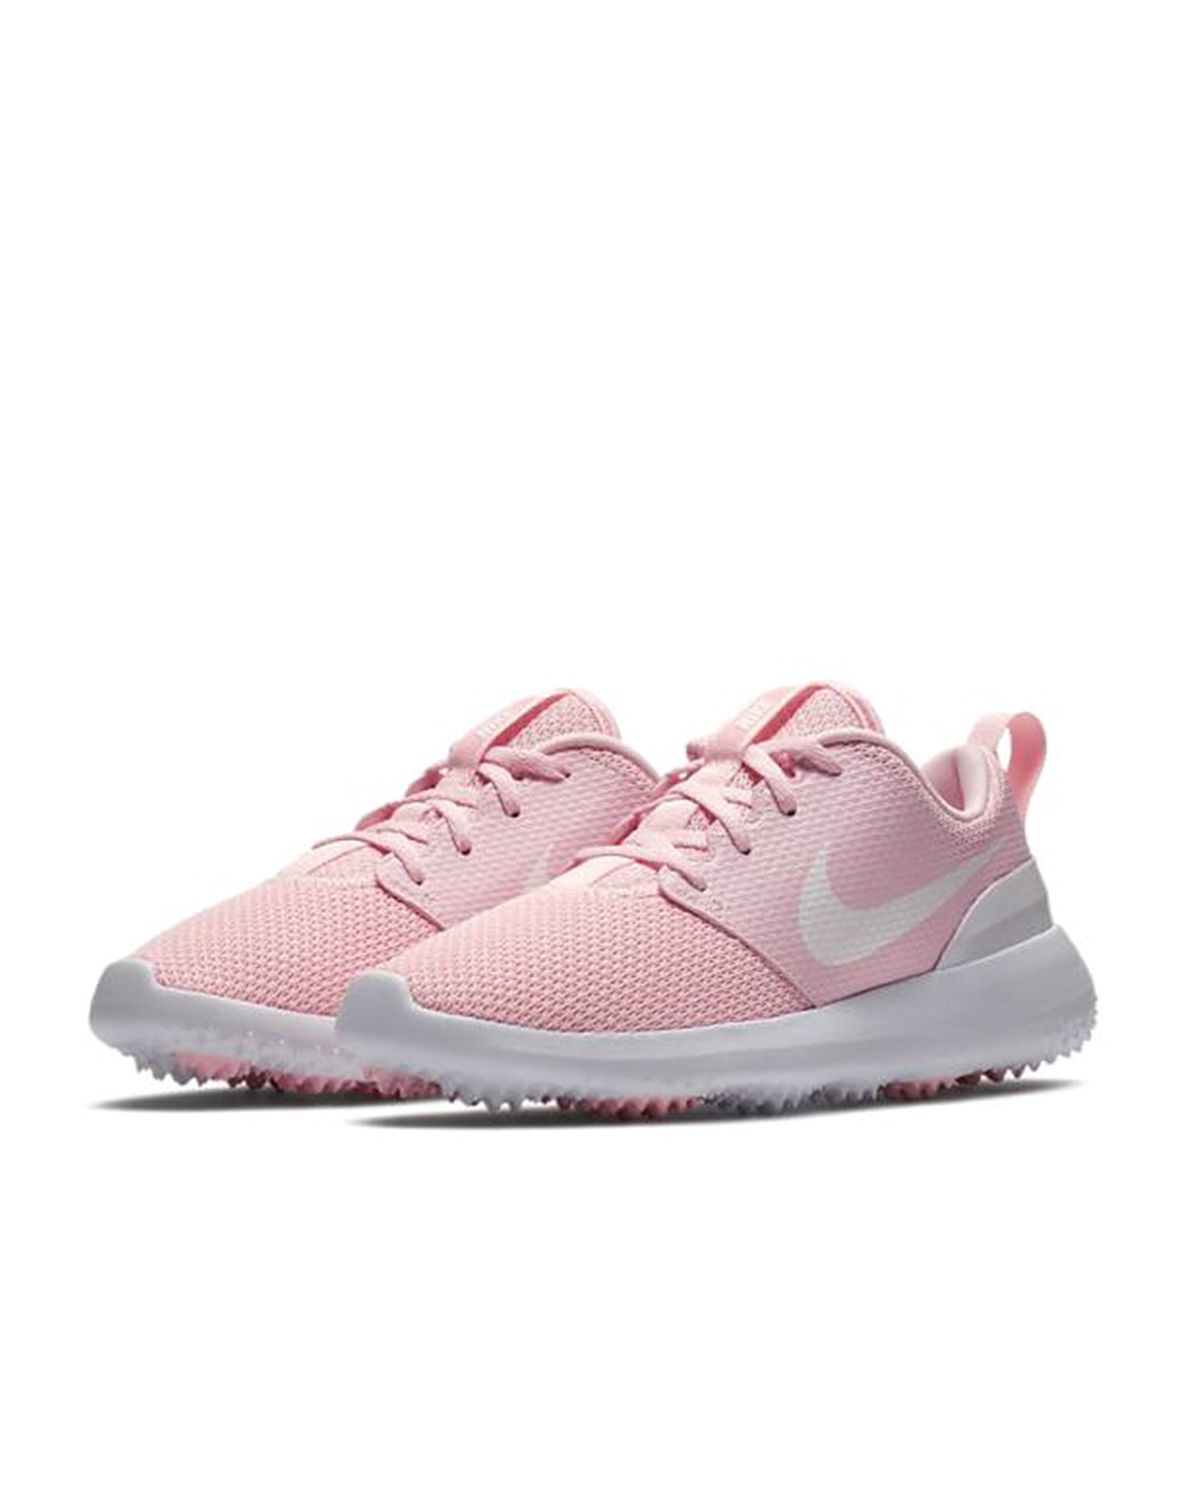 1279a2145b429 The Nike Roshe G Women s Golf Shoe features a mesh upper for breathability  and a modern look